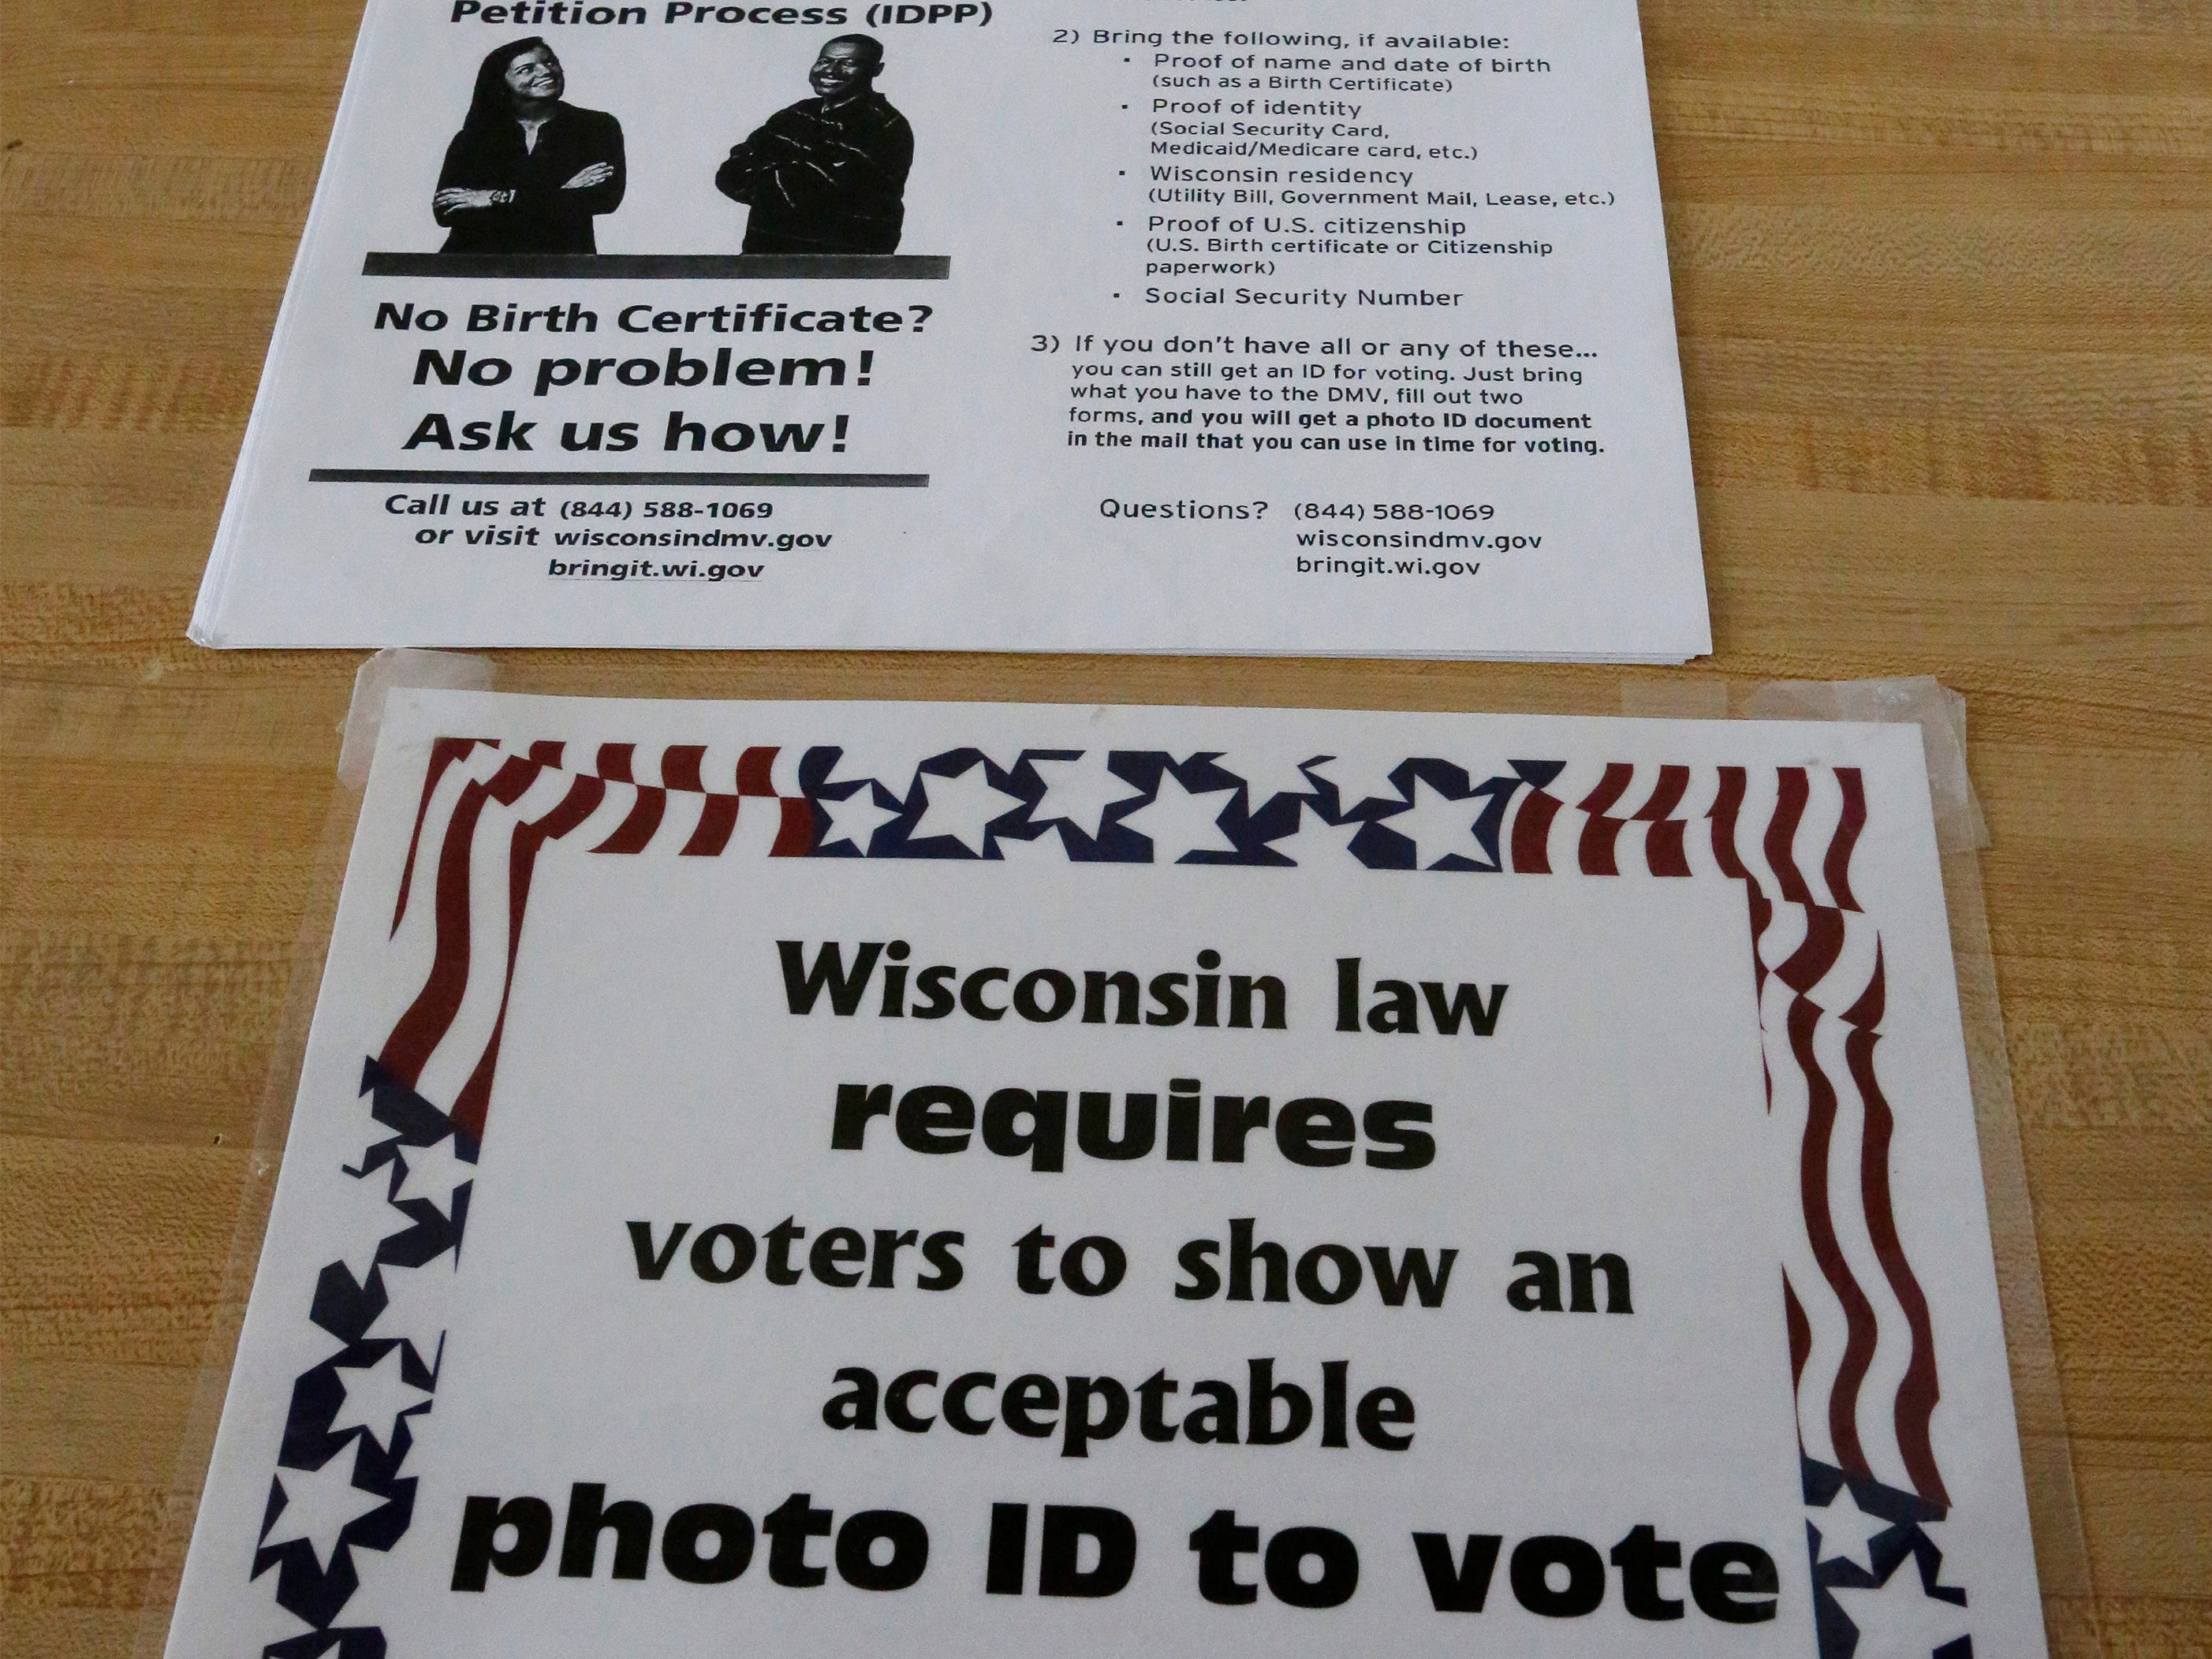 Voting instructions on display at the Good Shepherd Lutheran polls, Tuesday, April 2, 2019, in Sheboygan, Wis.